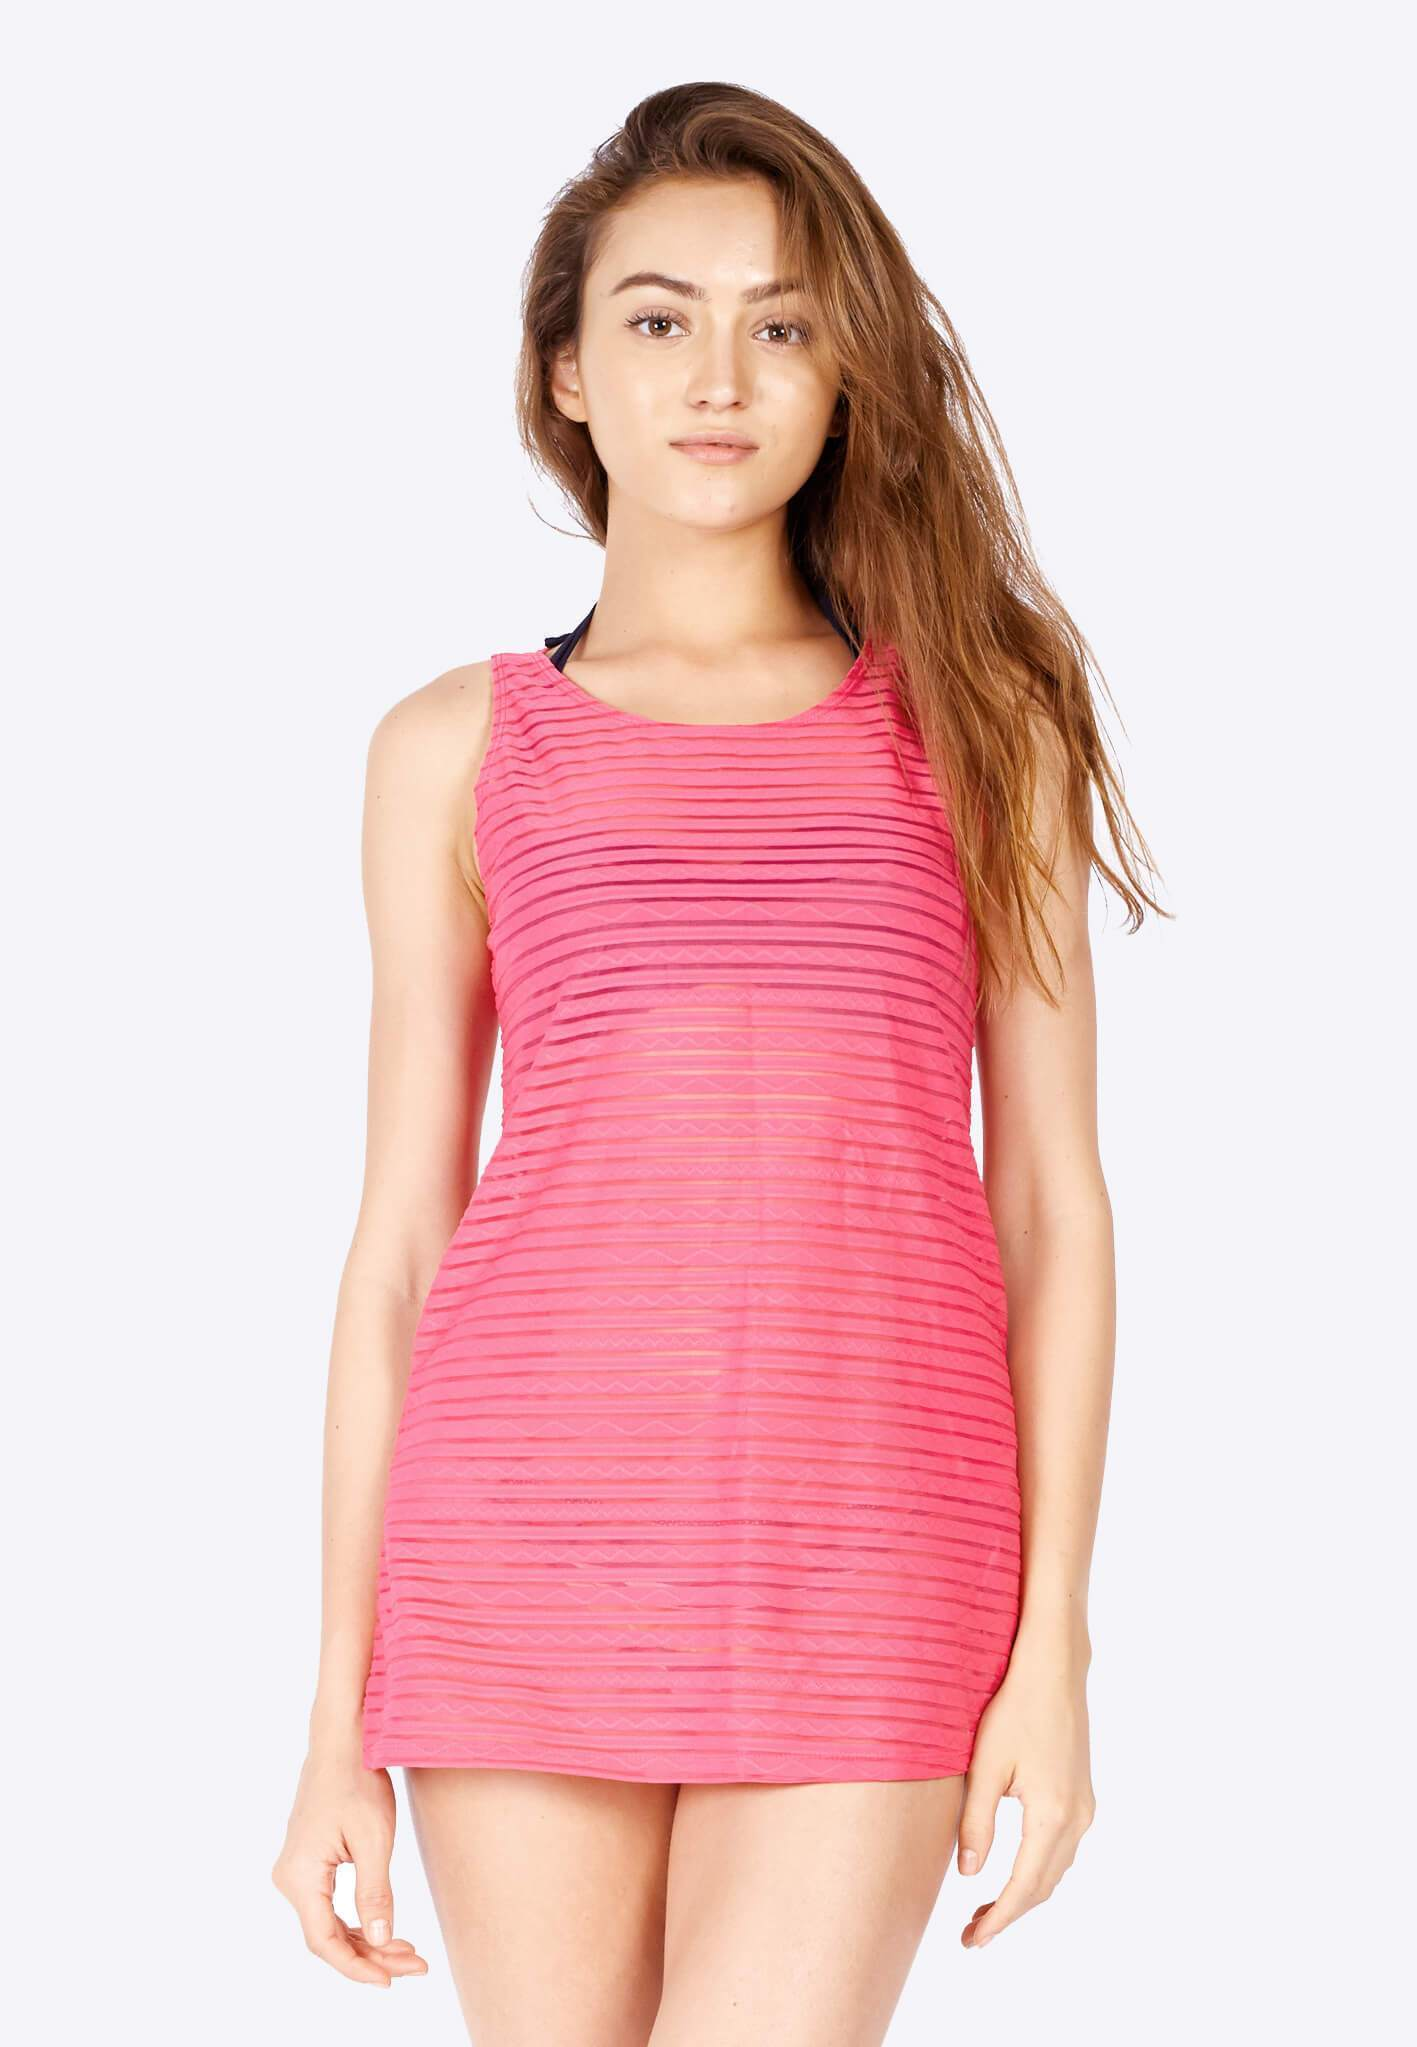 FUNFIT Openwork Mini-Shift Dress with Side Pockets (Pink) | S - 2XL